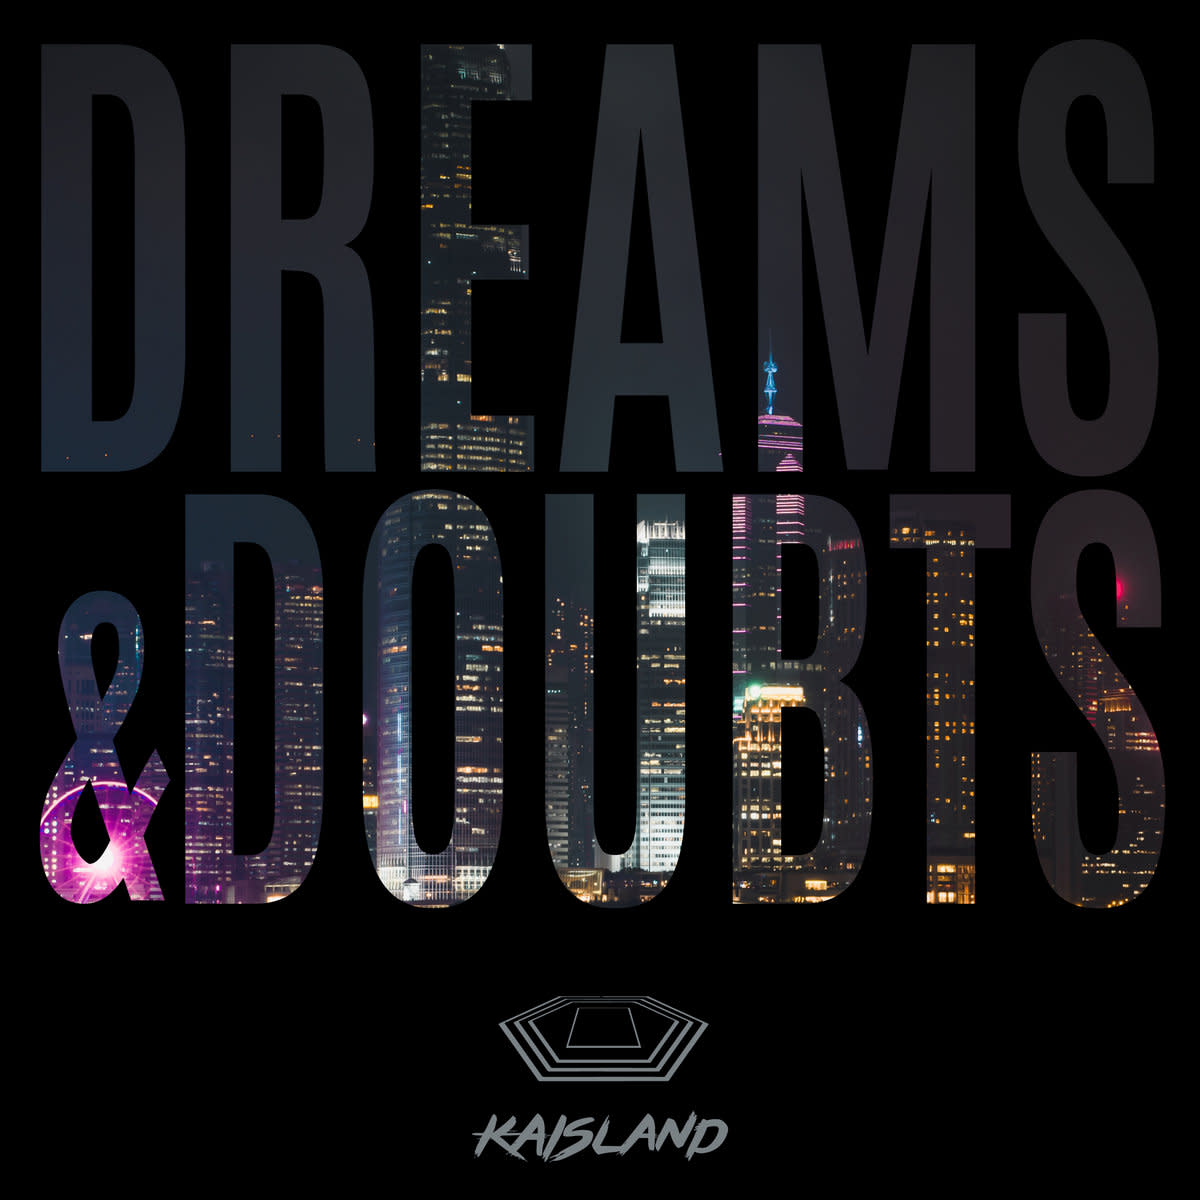 synth-single-review-dreams-doubts-by-kaisland